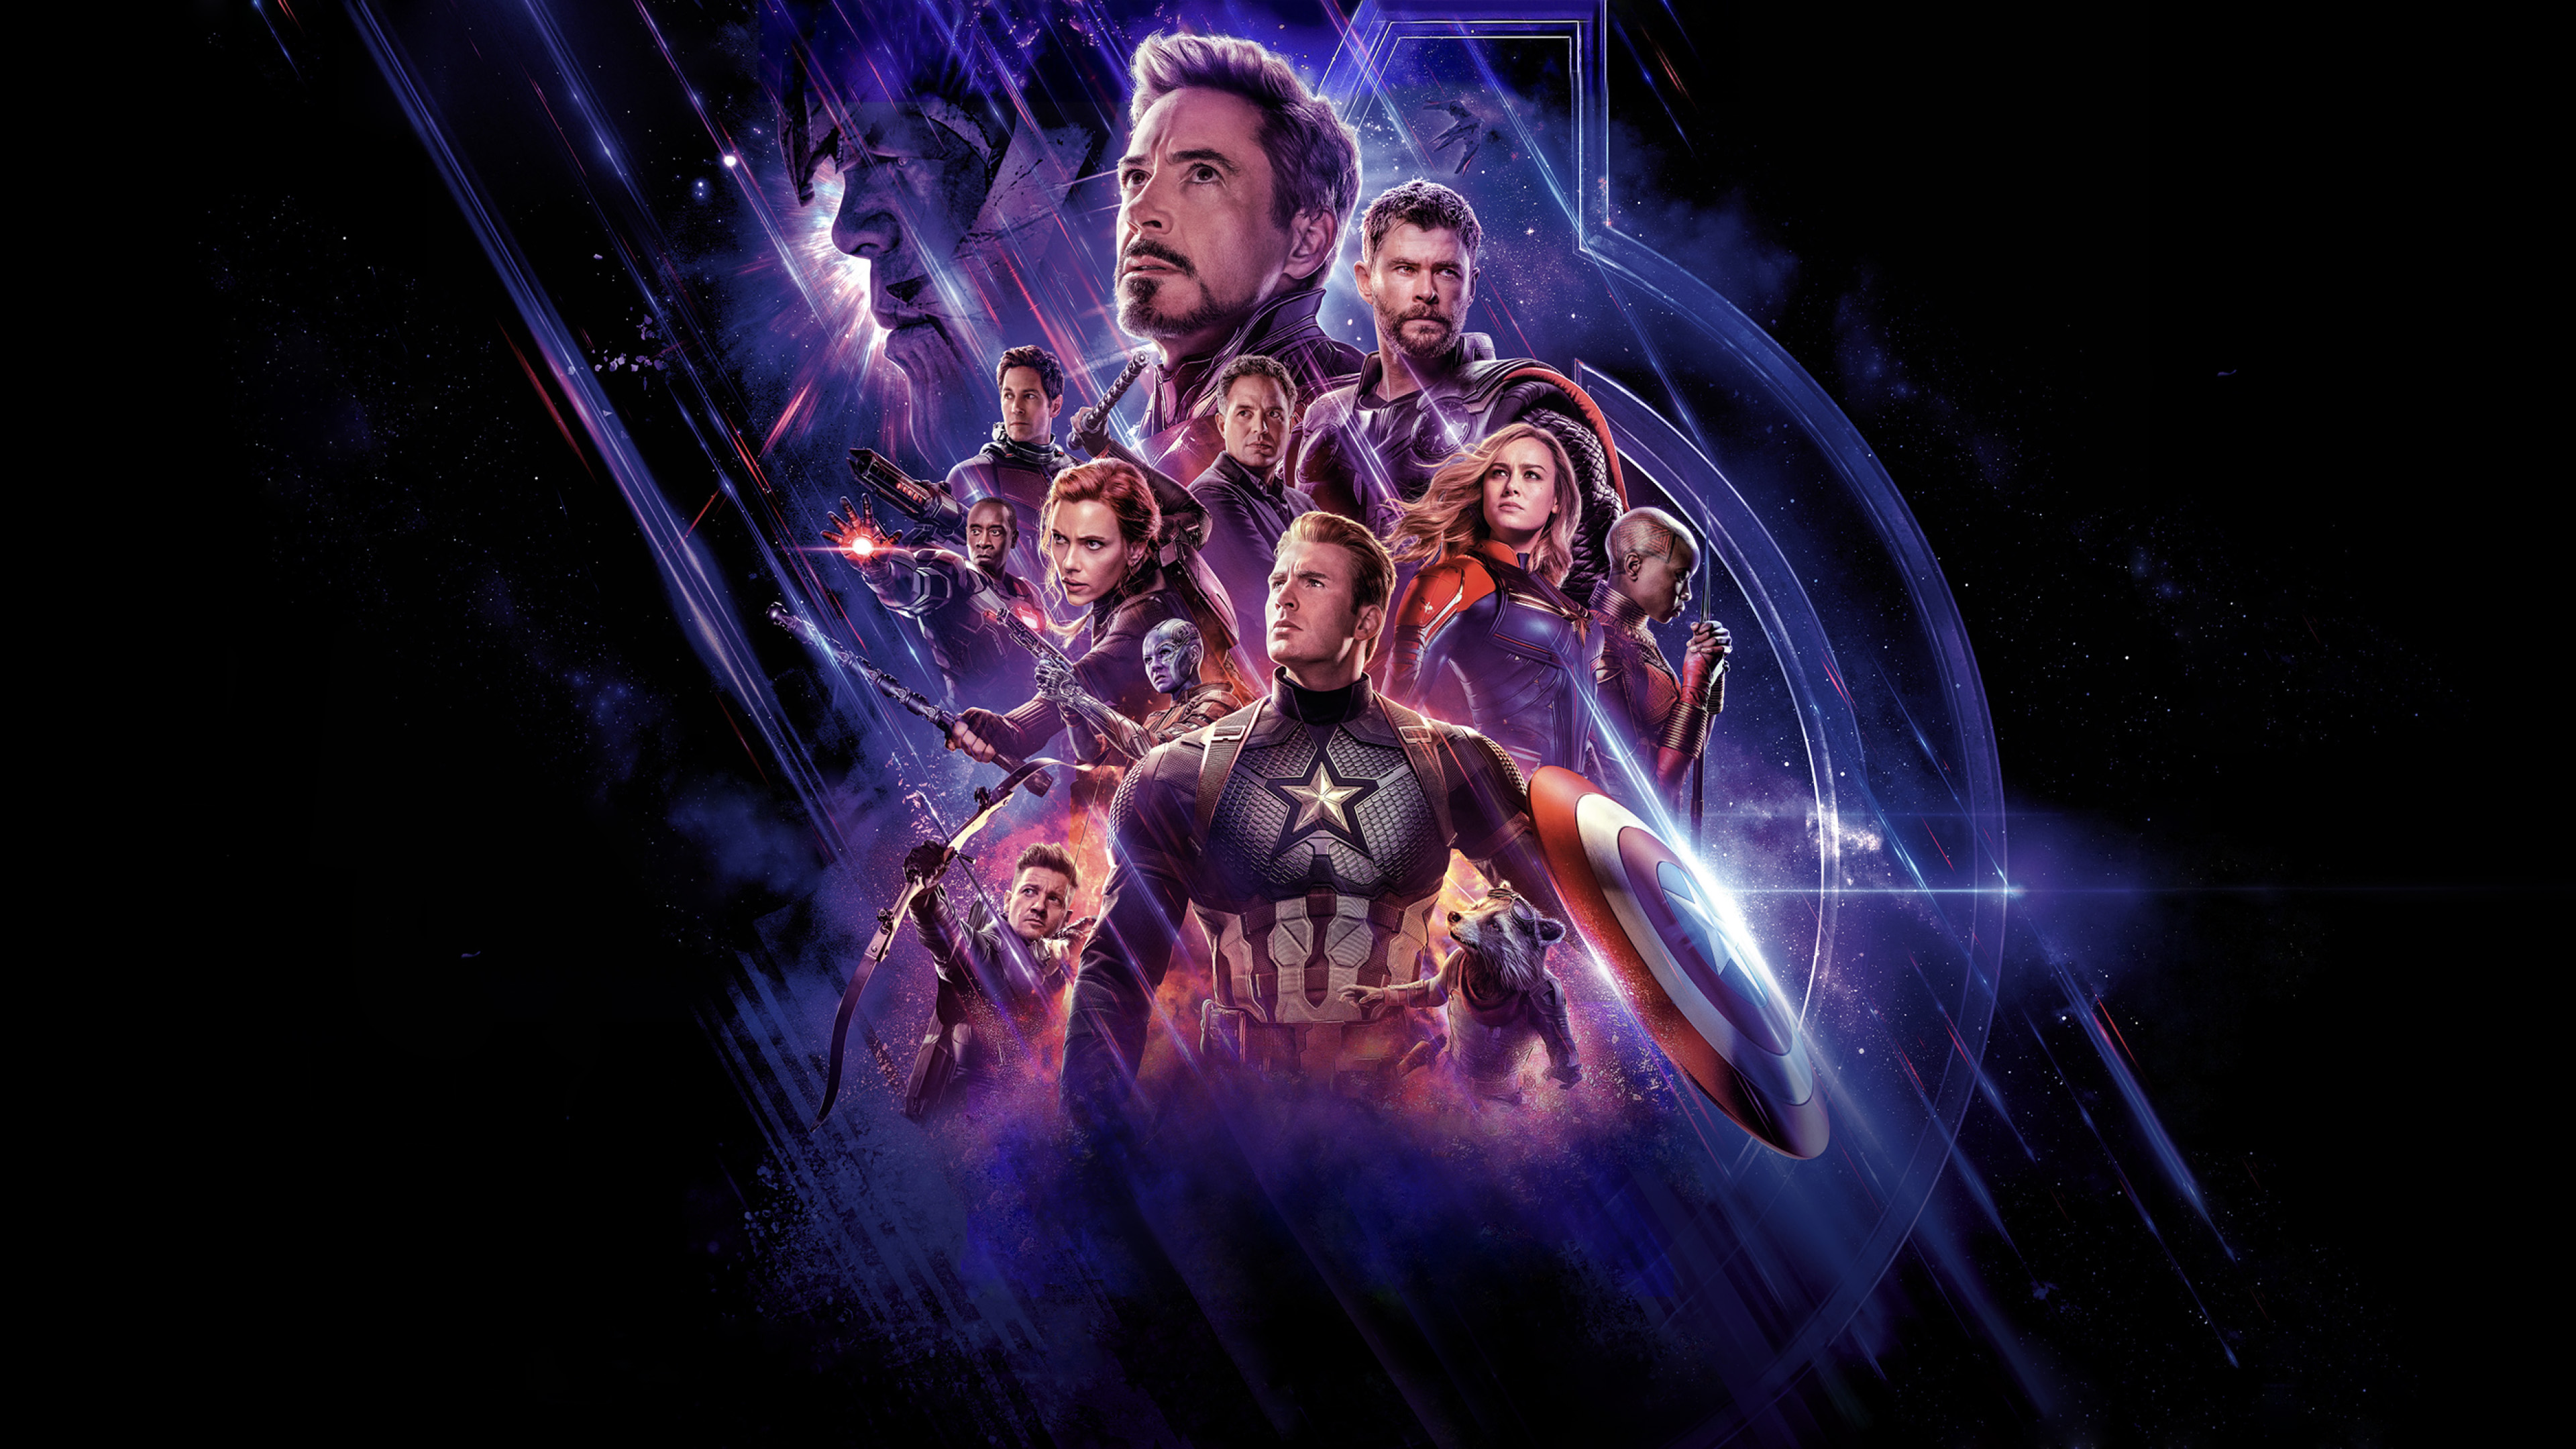 Avengers Endgame Poster 4K Wallpaper HD 3840x2160